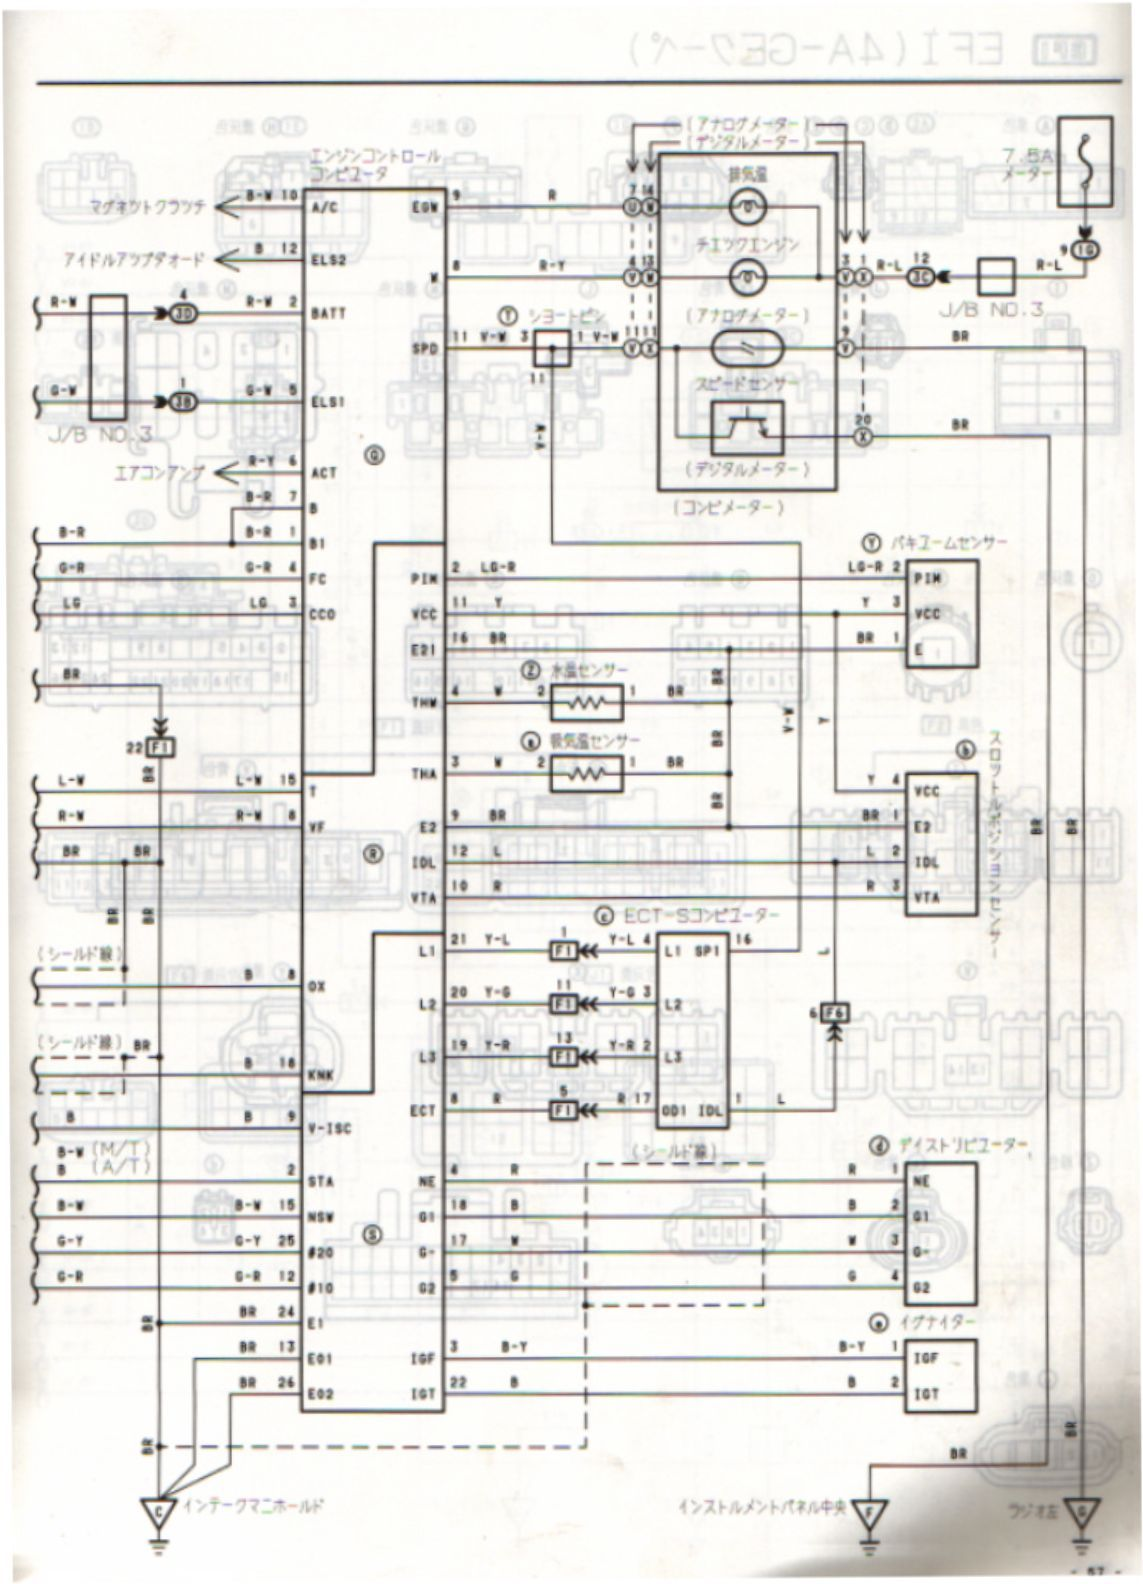 Wiring Diagram Blacktop Toyota Corolla Engine Bp Ecu Ae111 New Best Of